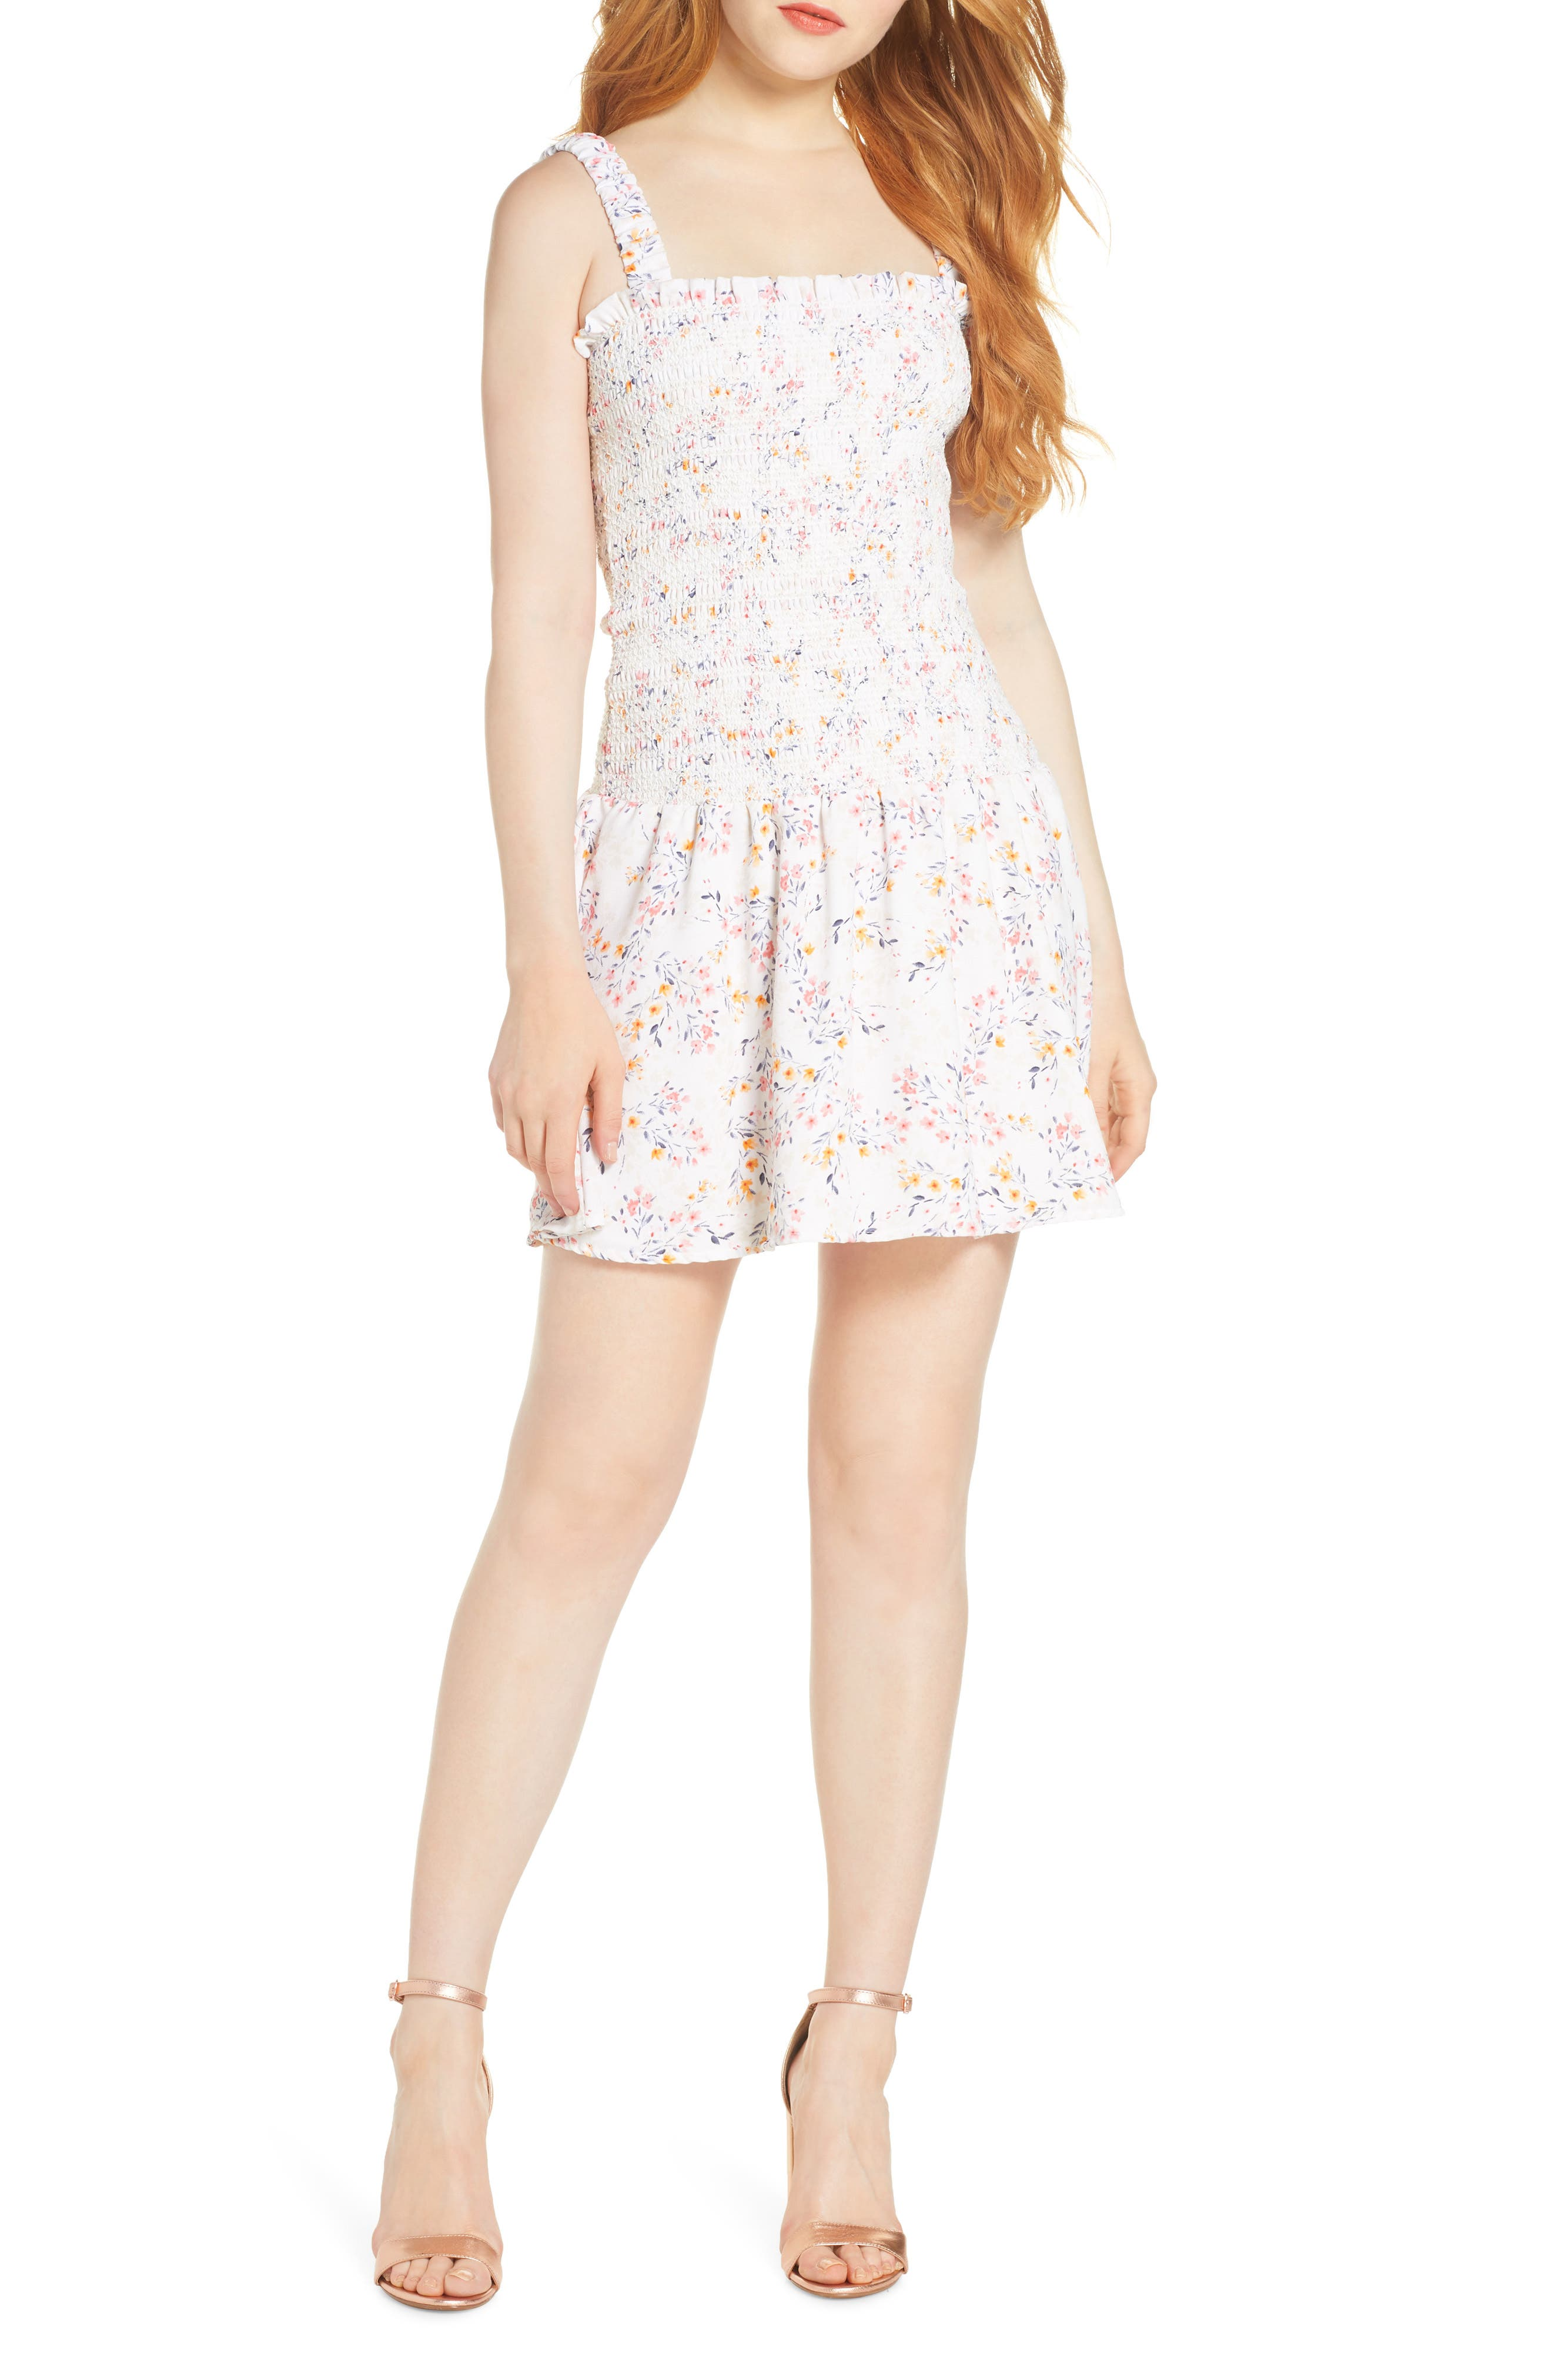 Ali & Jay X Dress Up Buttercup Eastside Luv Floral Minidress, None